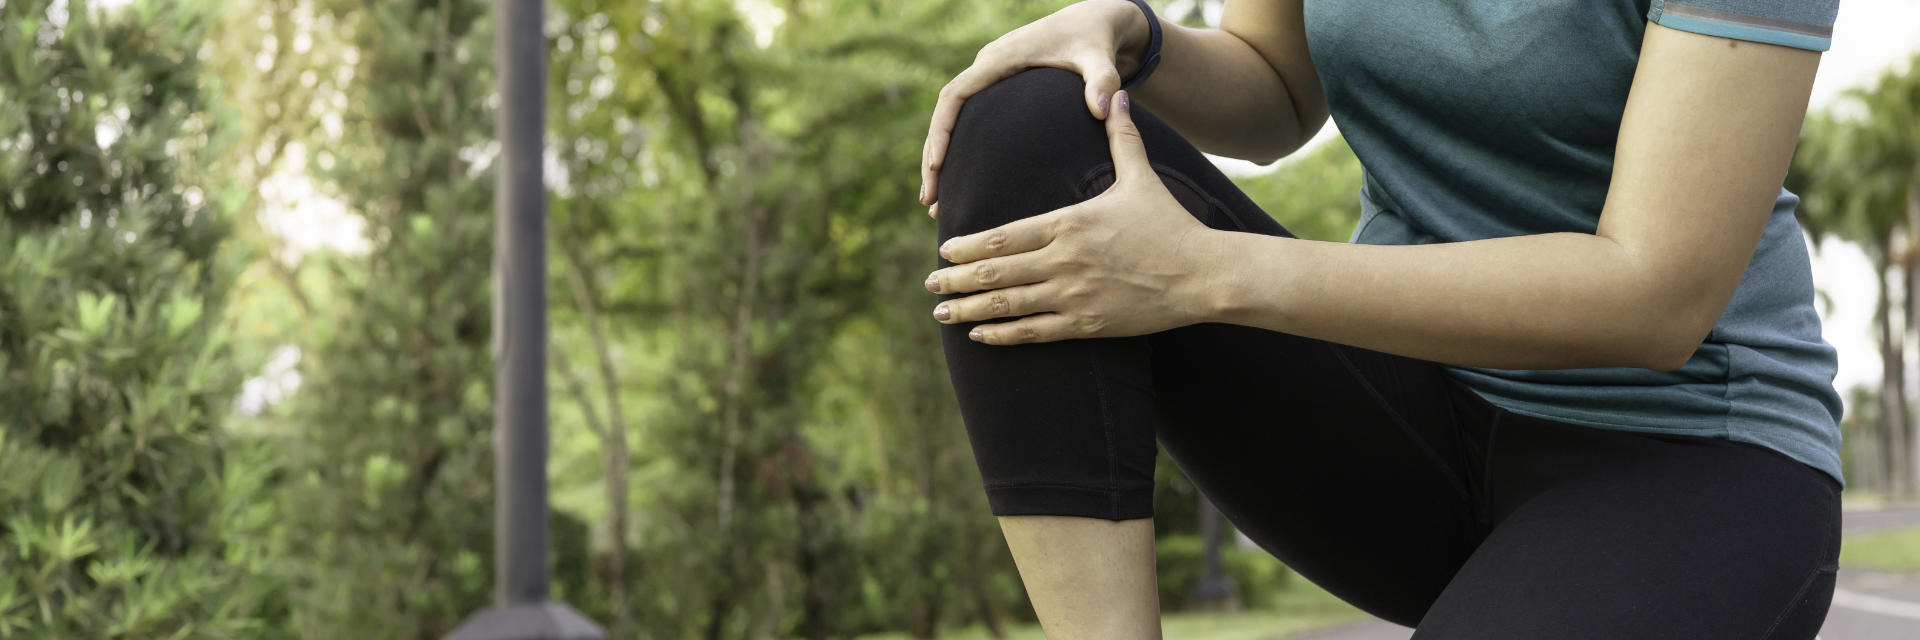 A woman running in the park stopped by pain in the knee area.